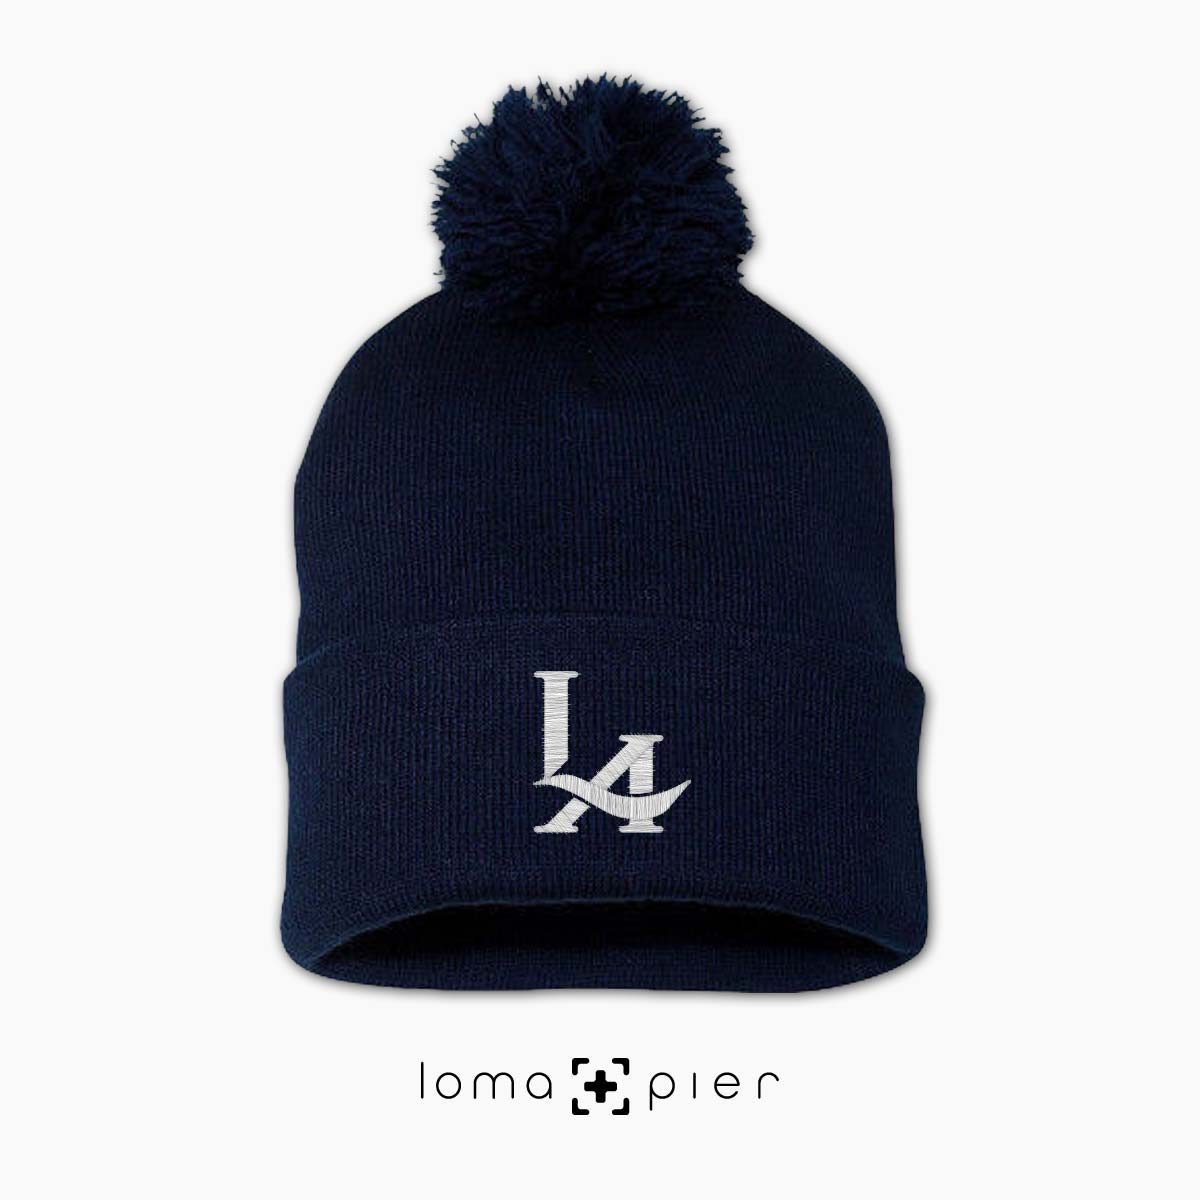 los angeles LA LOGO icon embroidered on a navy blue pom pom beanie by loma+pier hat store